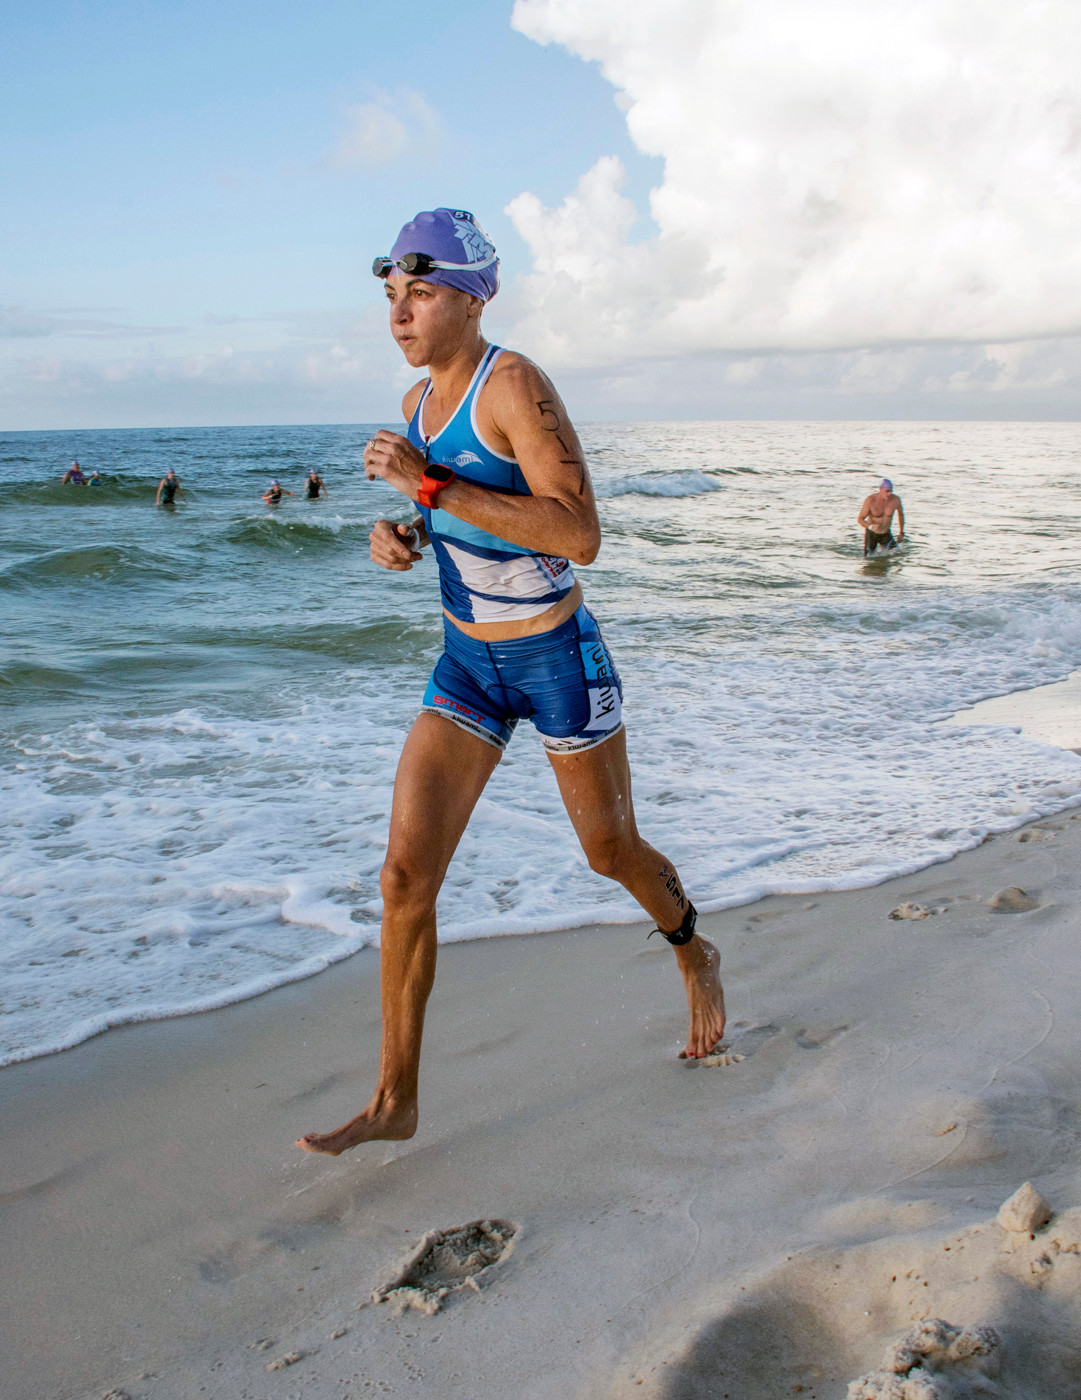 The Brett/Robinson Alabama Coastal Triathlon takes place Saturday, Sept. 8, 2018, at the Gulf Shores Public Beach with pre- and post-race events at The Hangout.